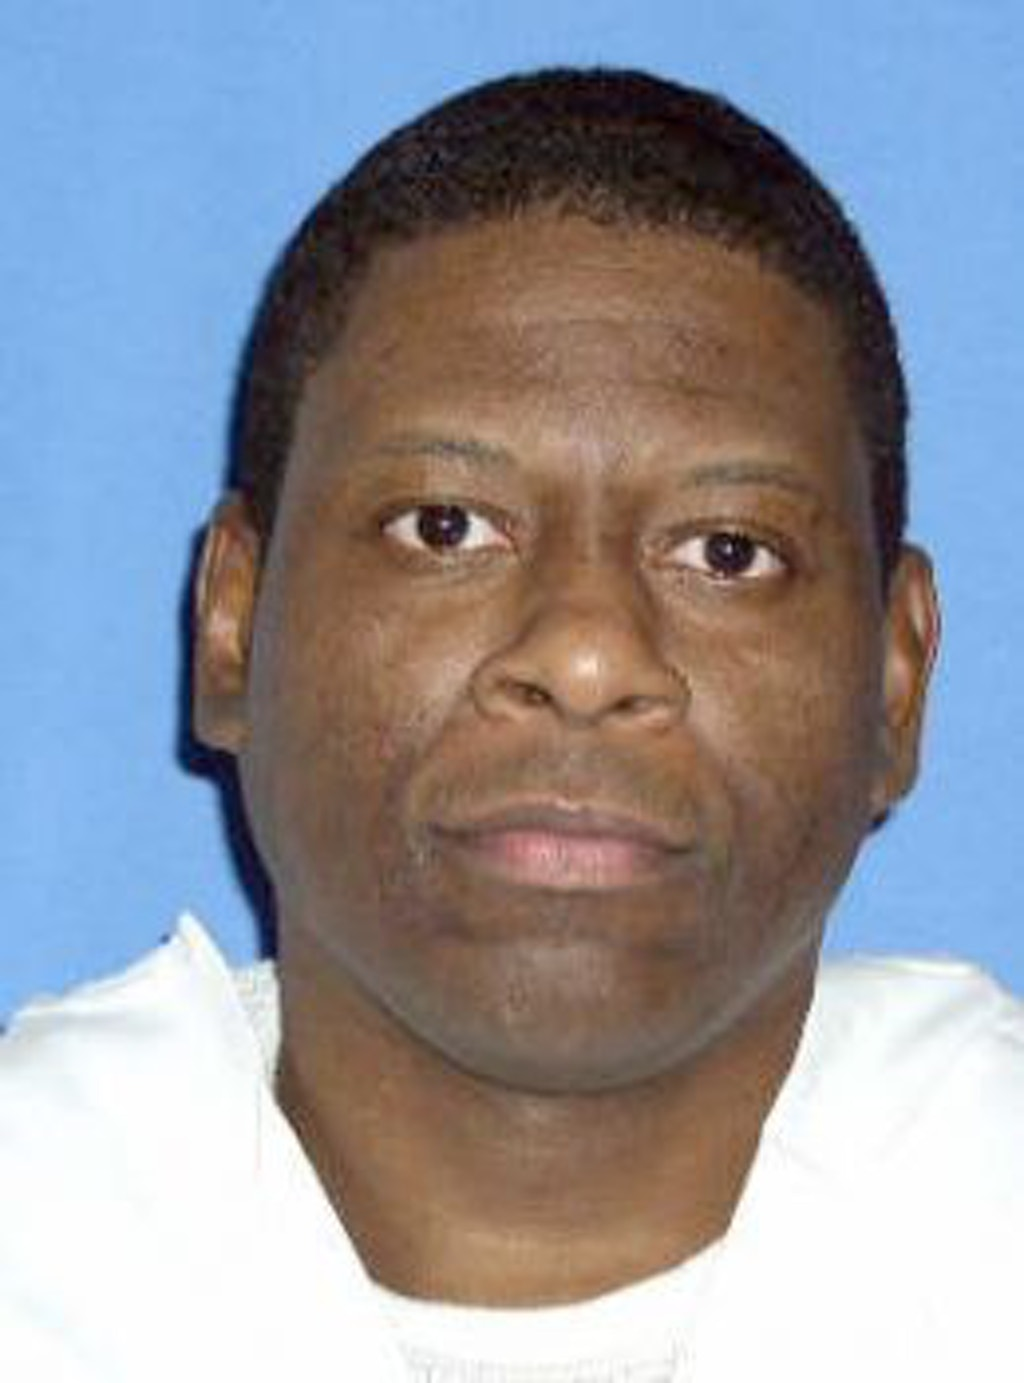 UPCOMING EXECUTION: New Evidence Raises Doubts About Texas Inmate's Guilt